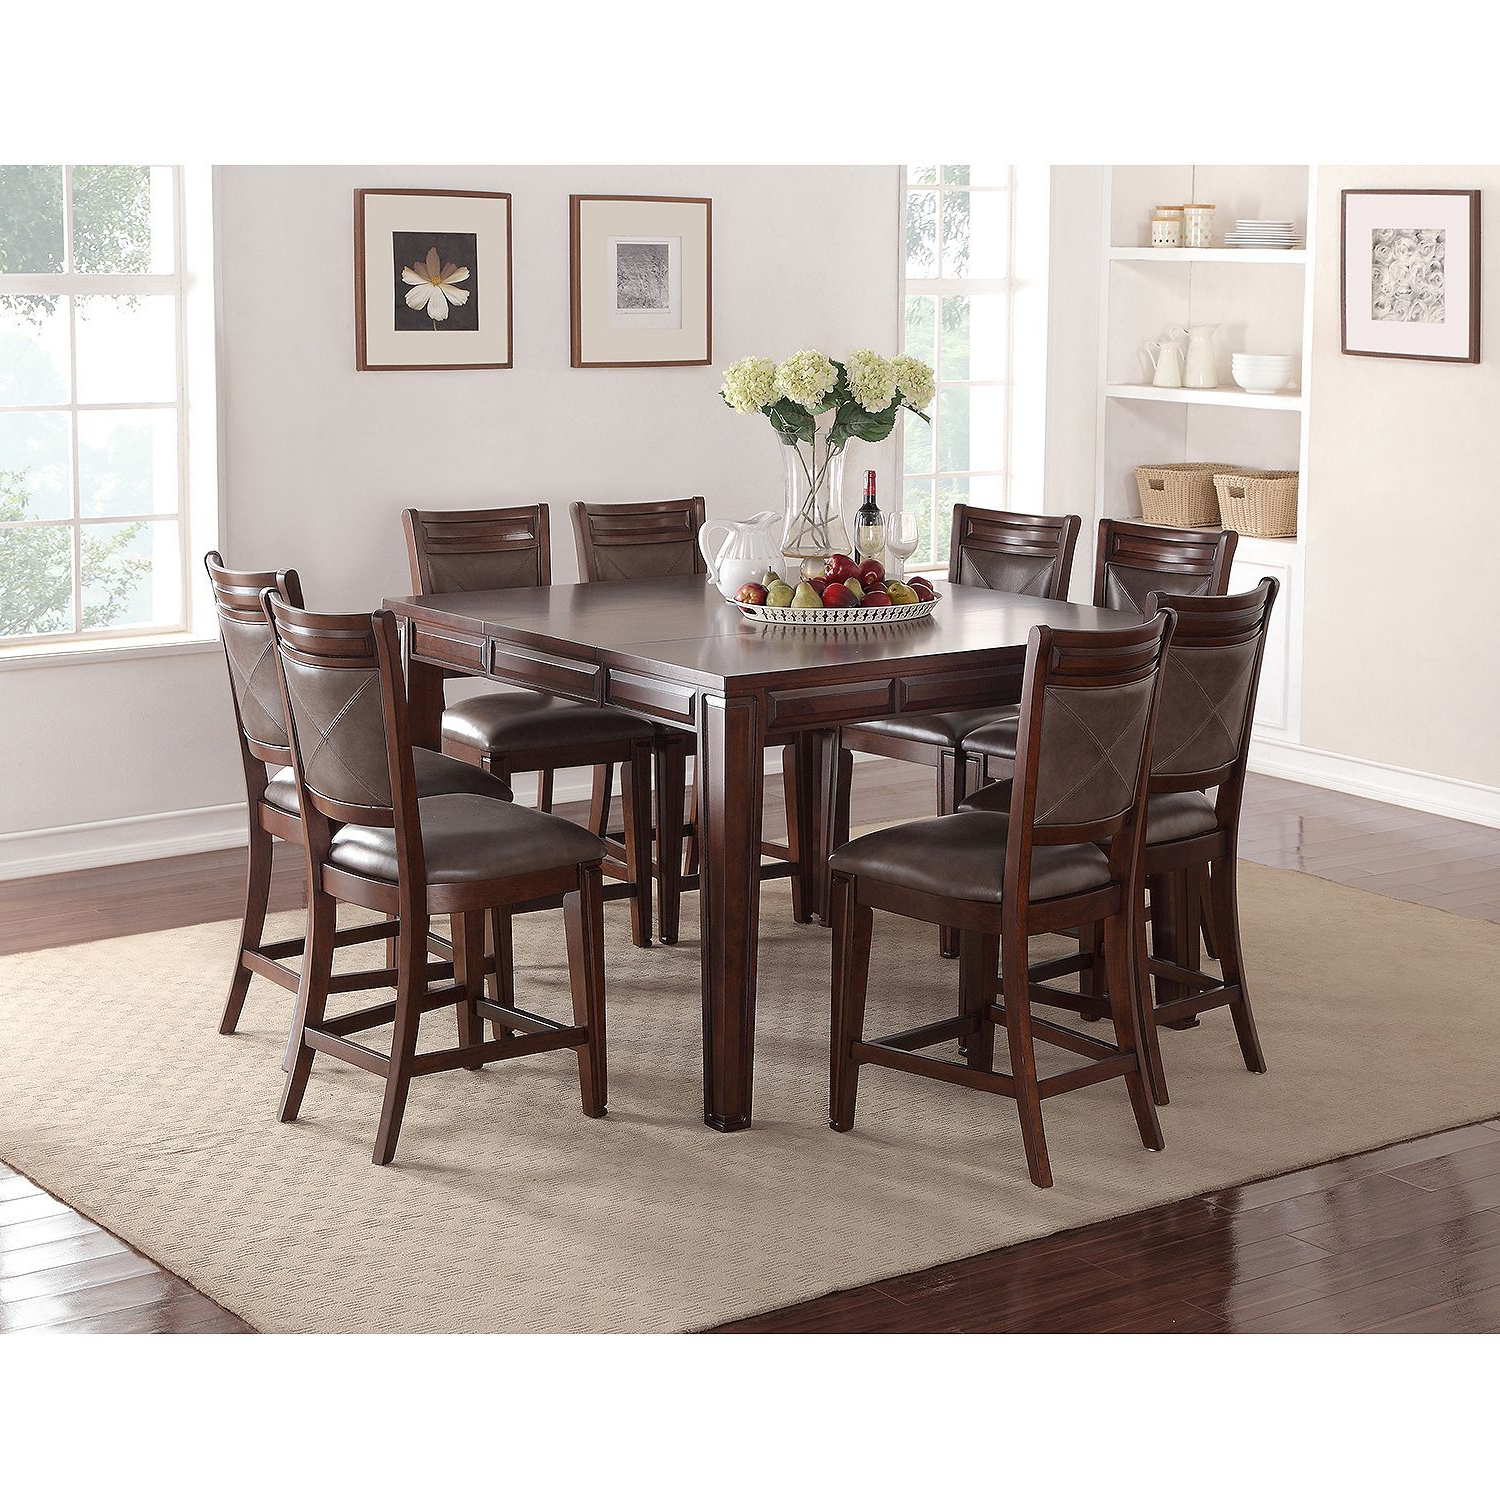 Widely Used Member's Mark Audrey Counter Height Table And Chairs, 9 Pertaining To Transitional Antique Walnut Square Casual Dining Tables (View 11 of 30)